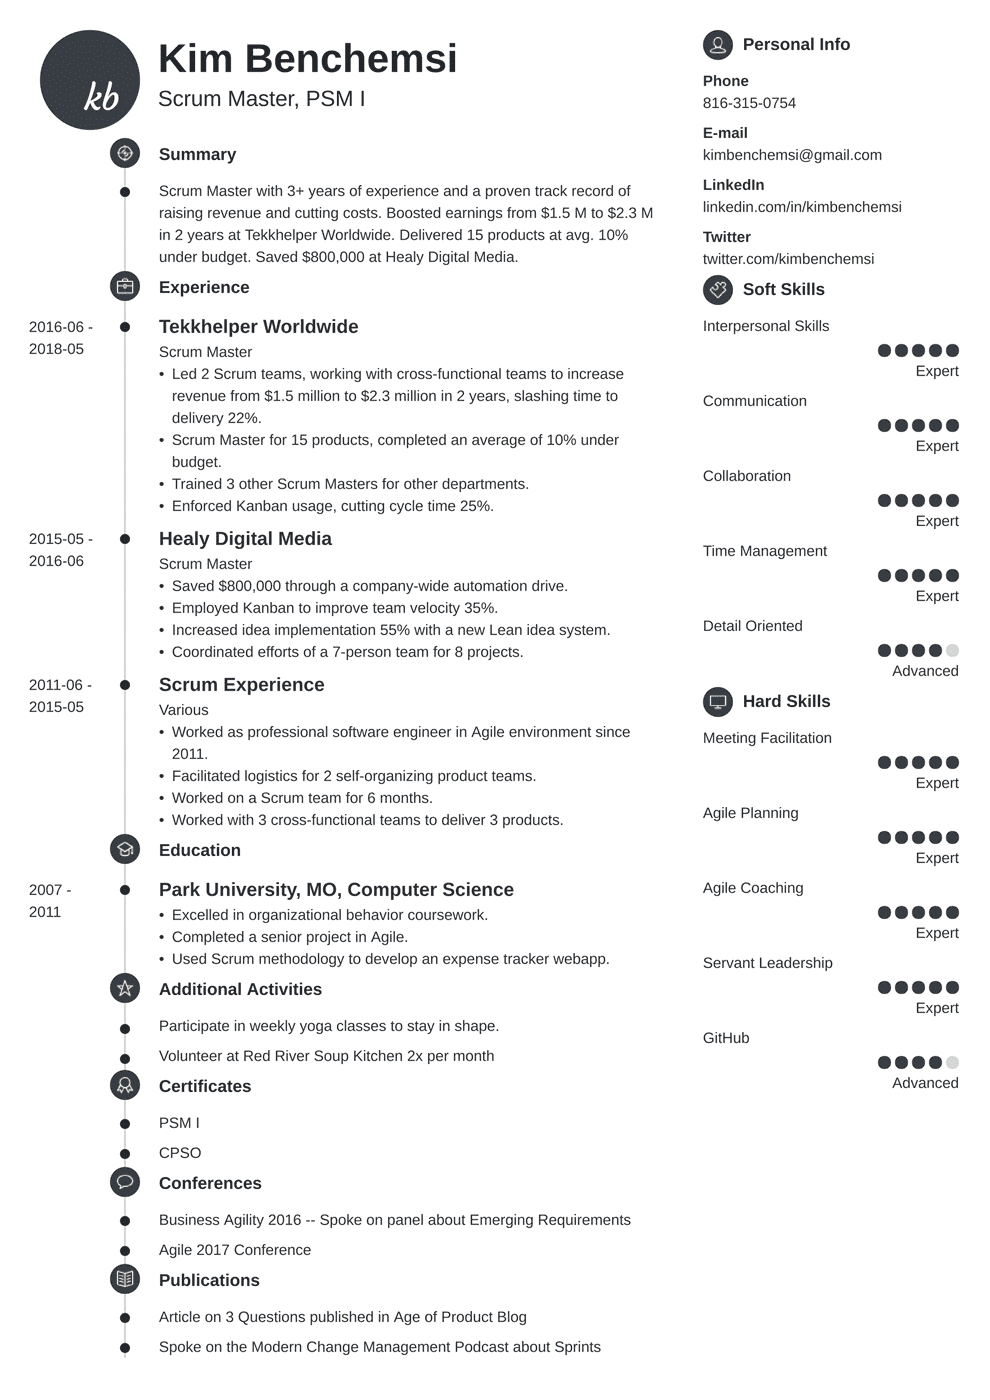 Scrum Master Resume: Samples and Full Writing Guide [+20 Examples]